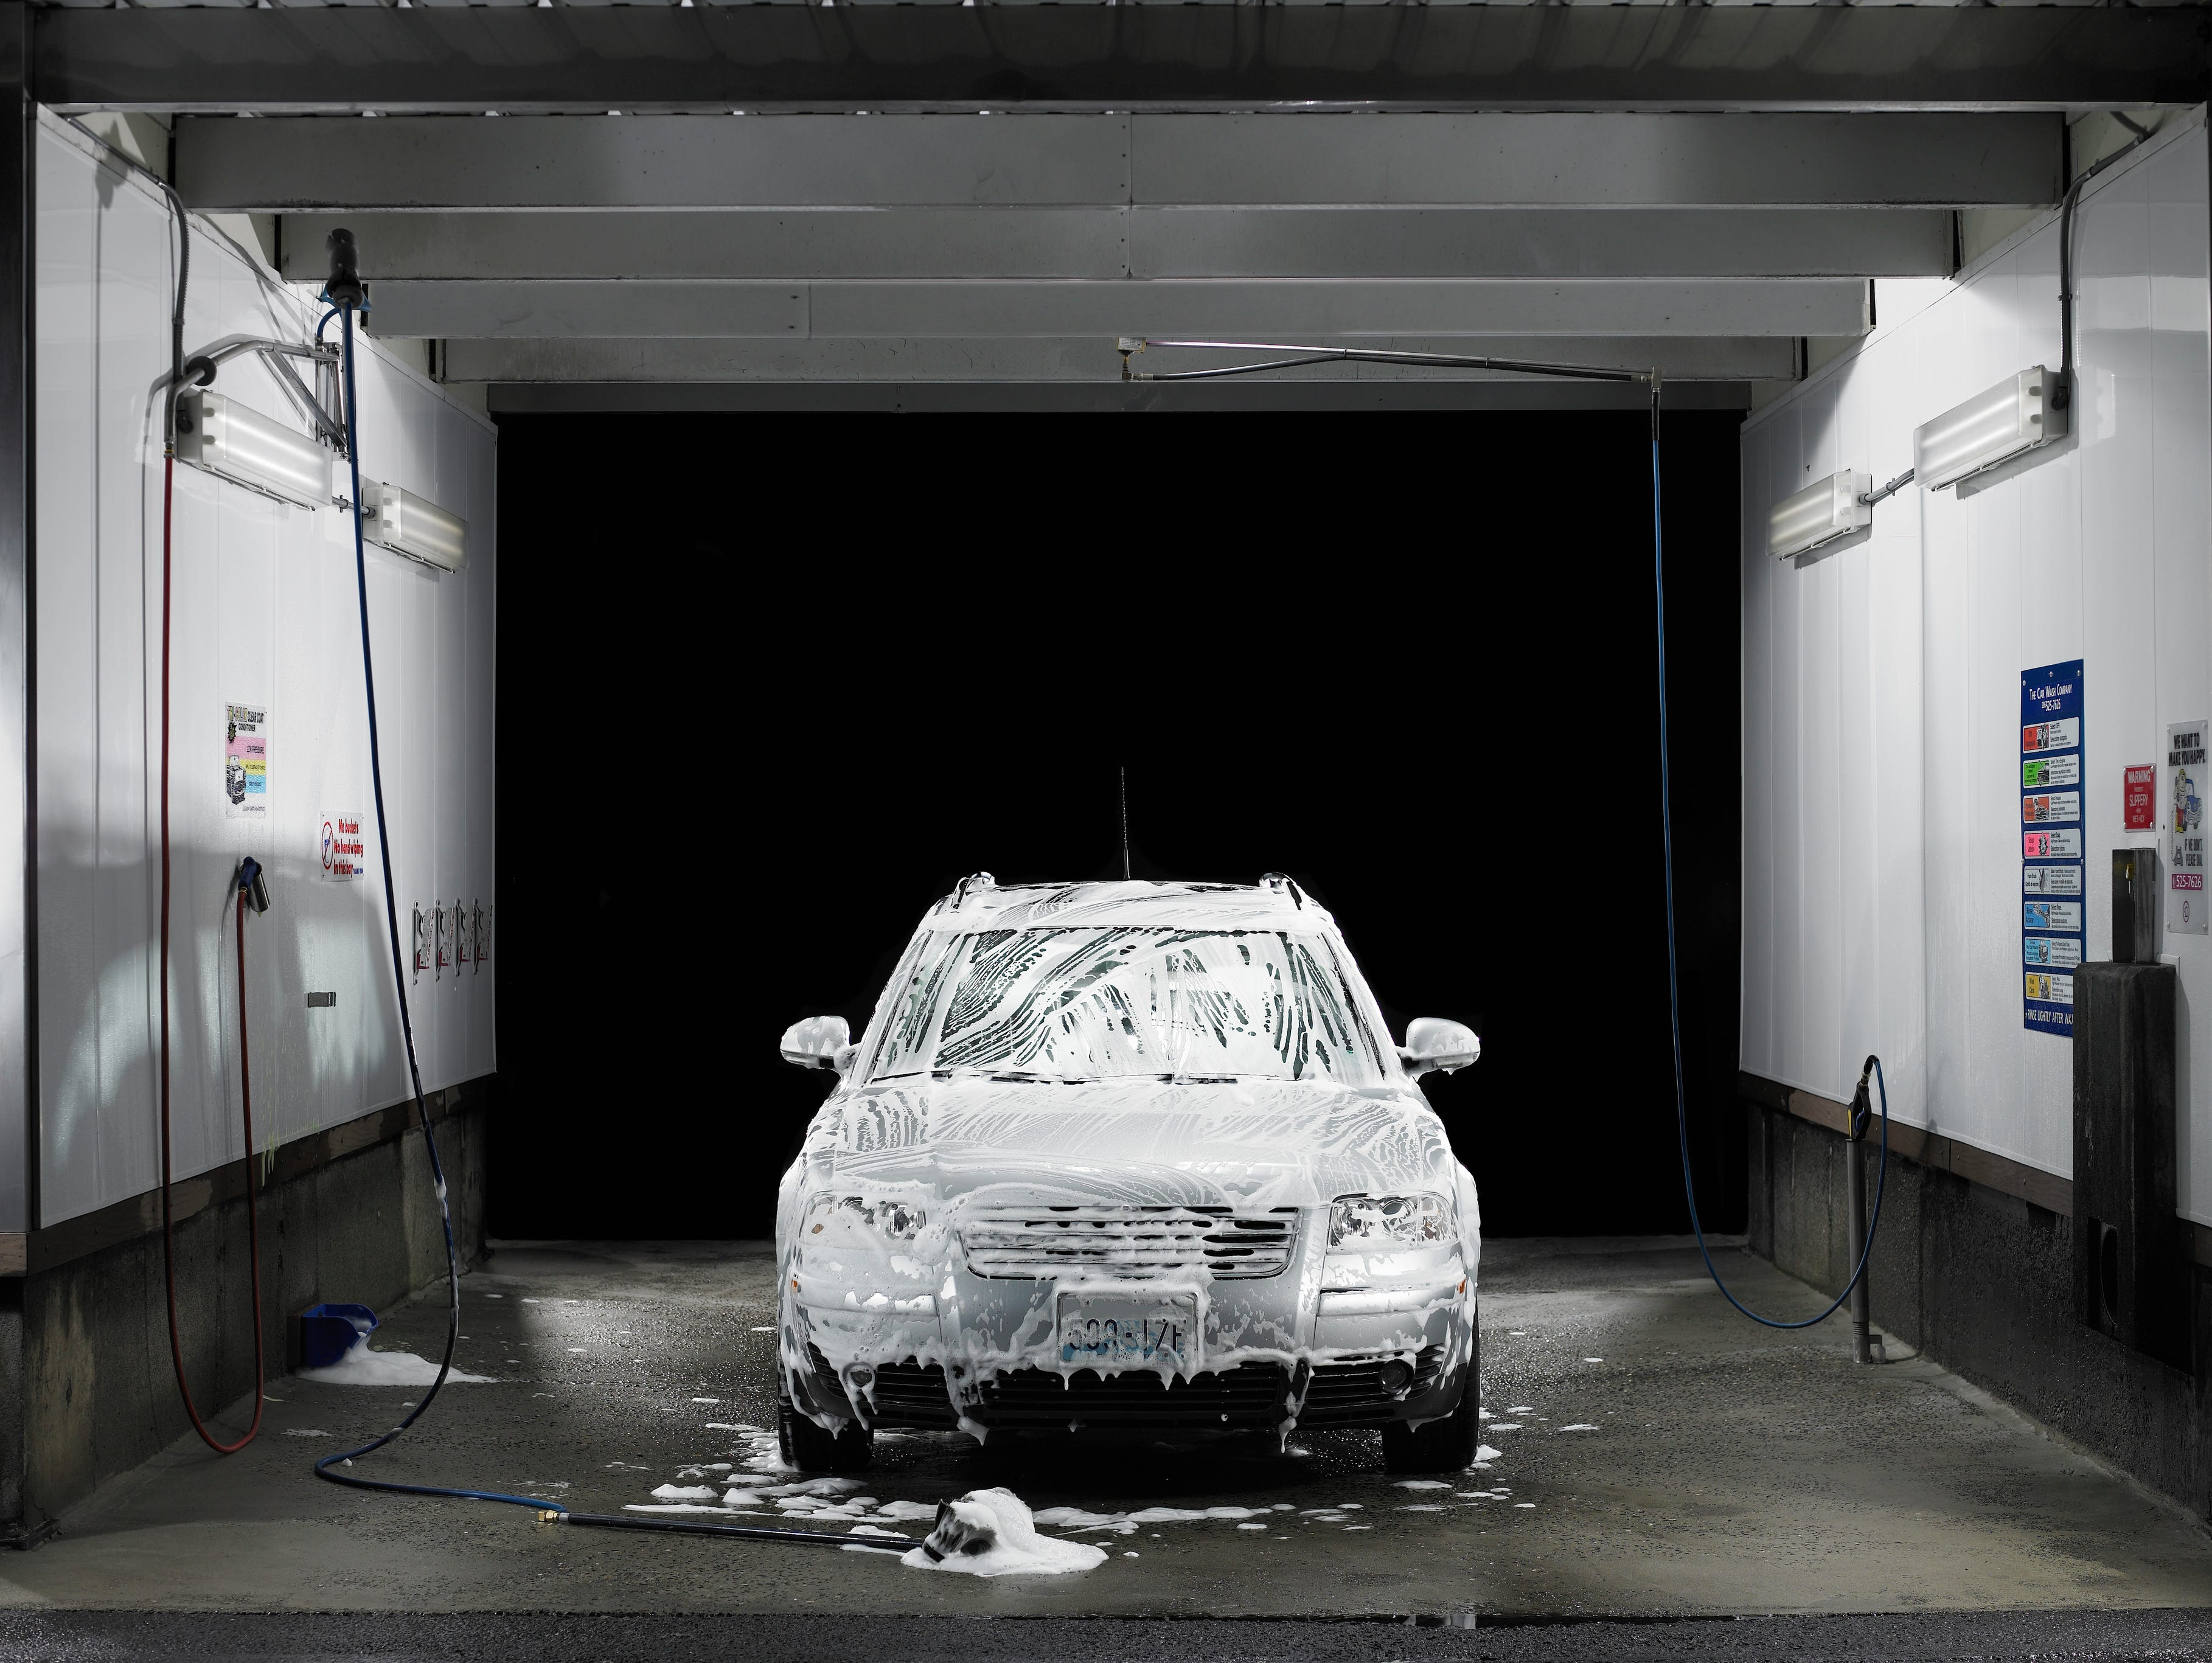 Save money on services from car washes, spa treatments, pet grooming, dry cleaning and more.